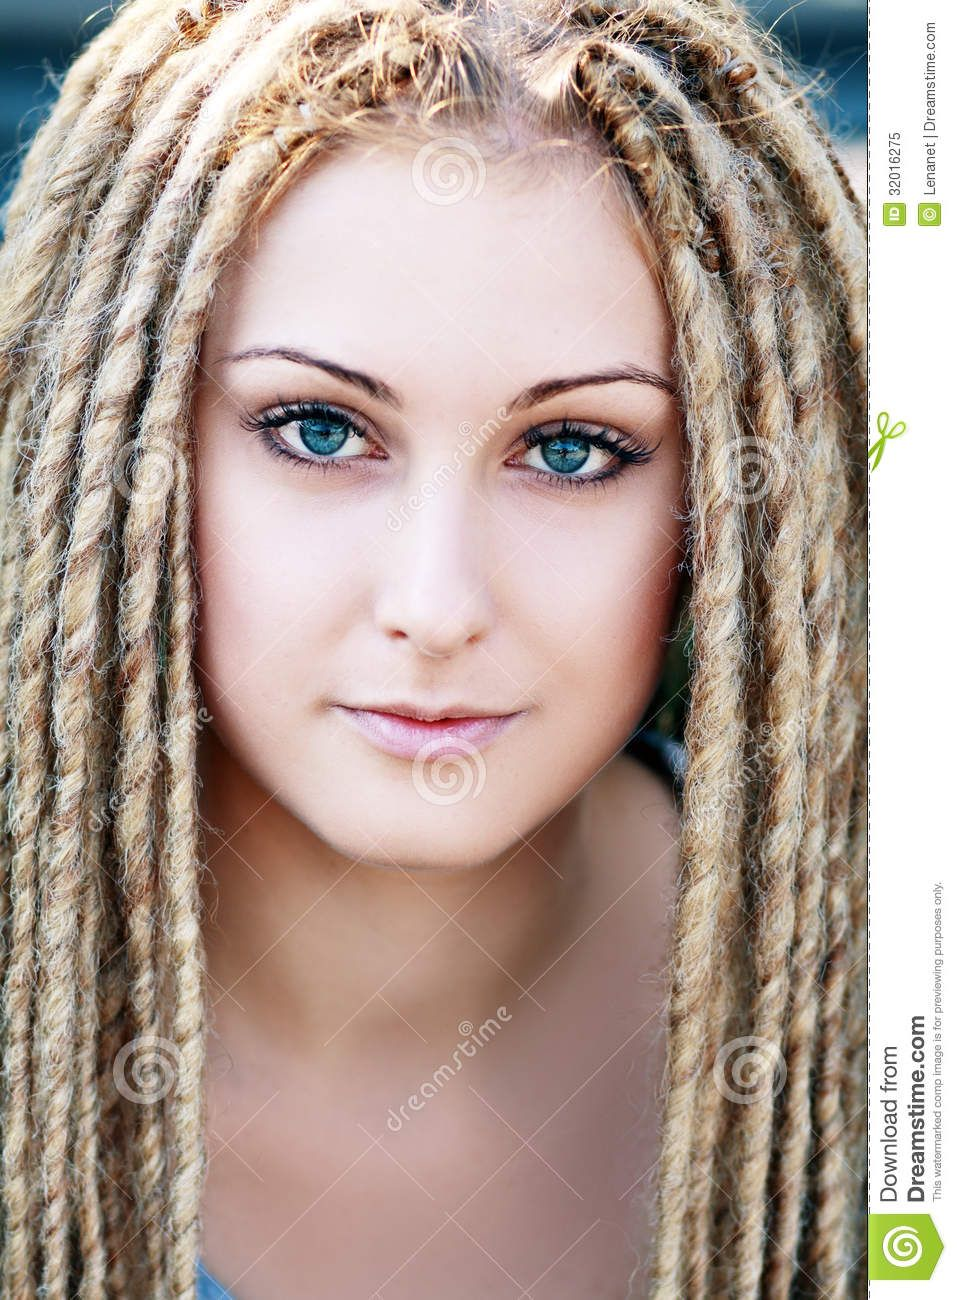 white girl dreads Google Search Cheveux coiffure